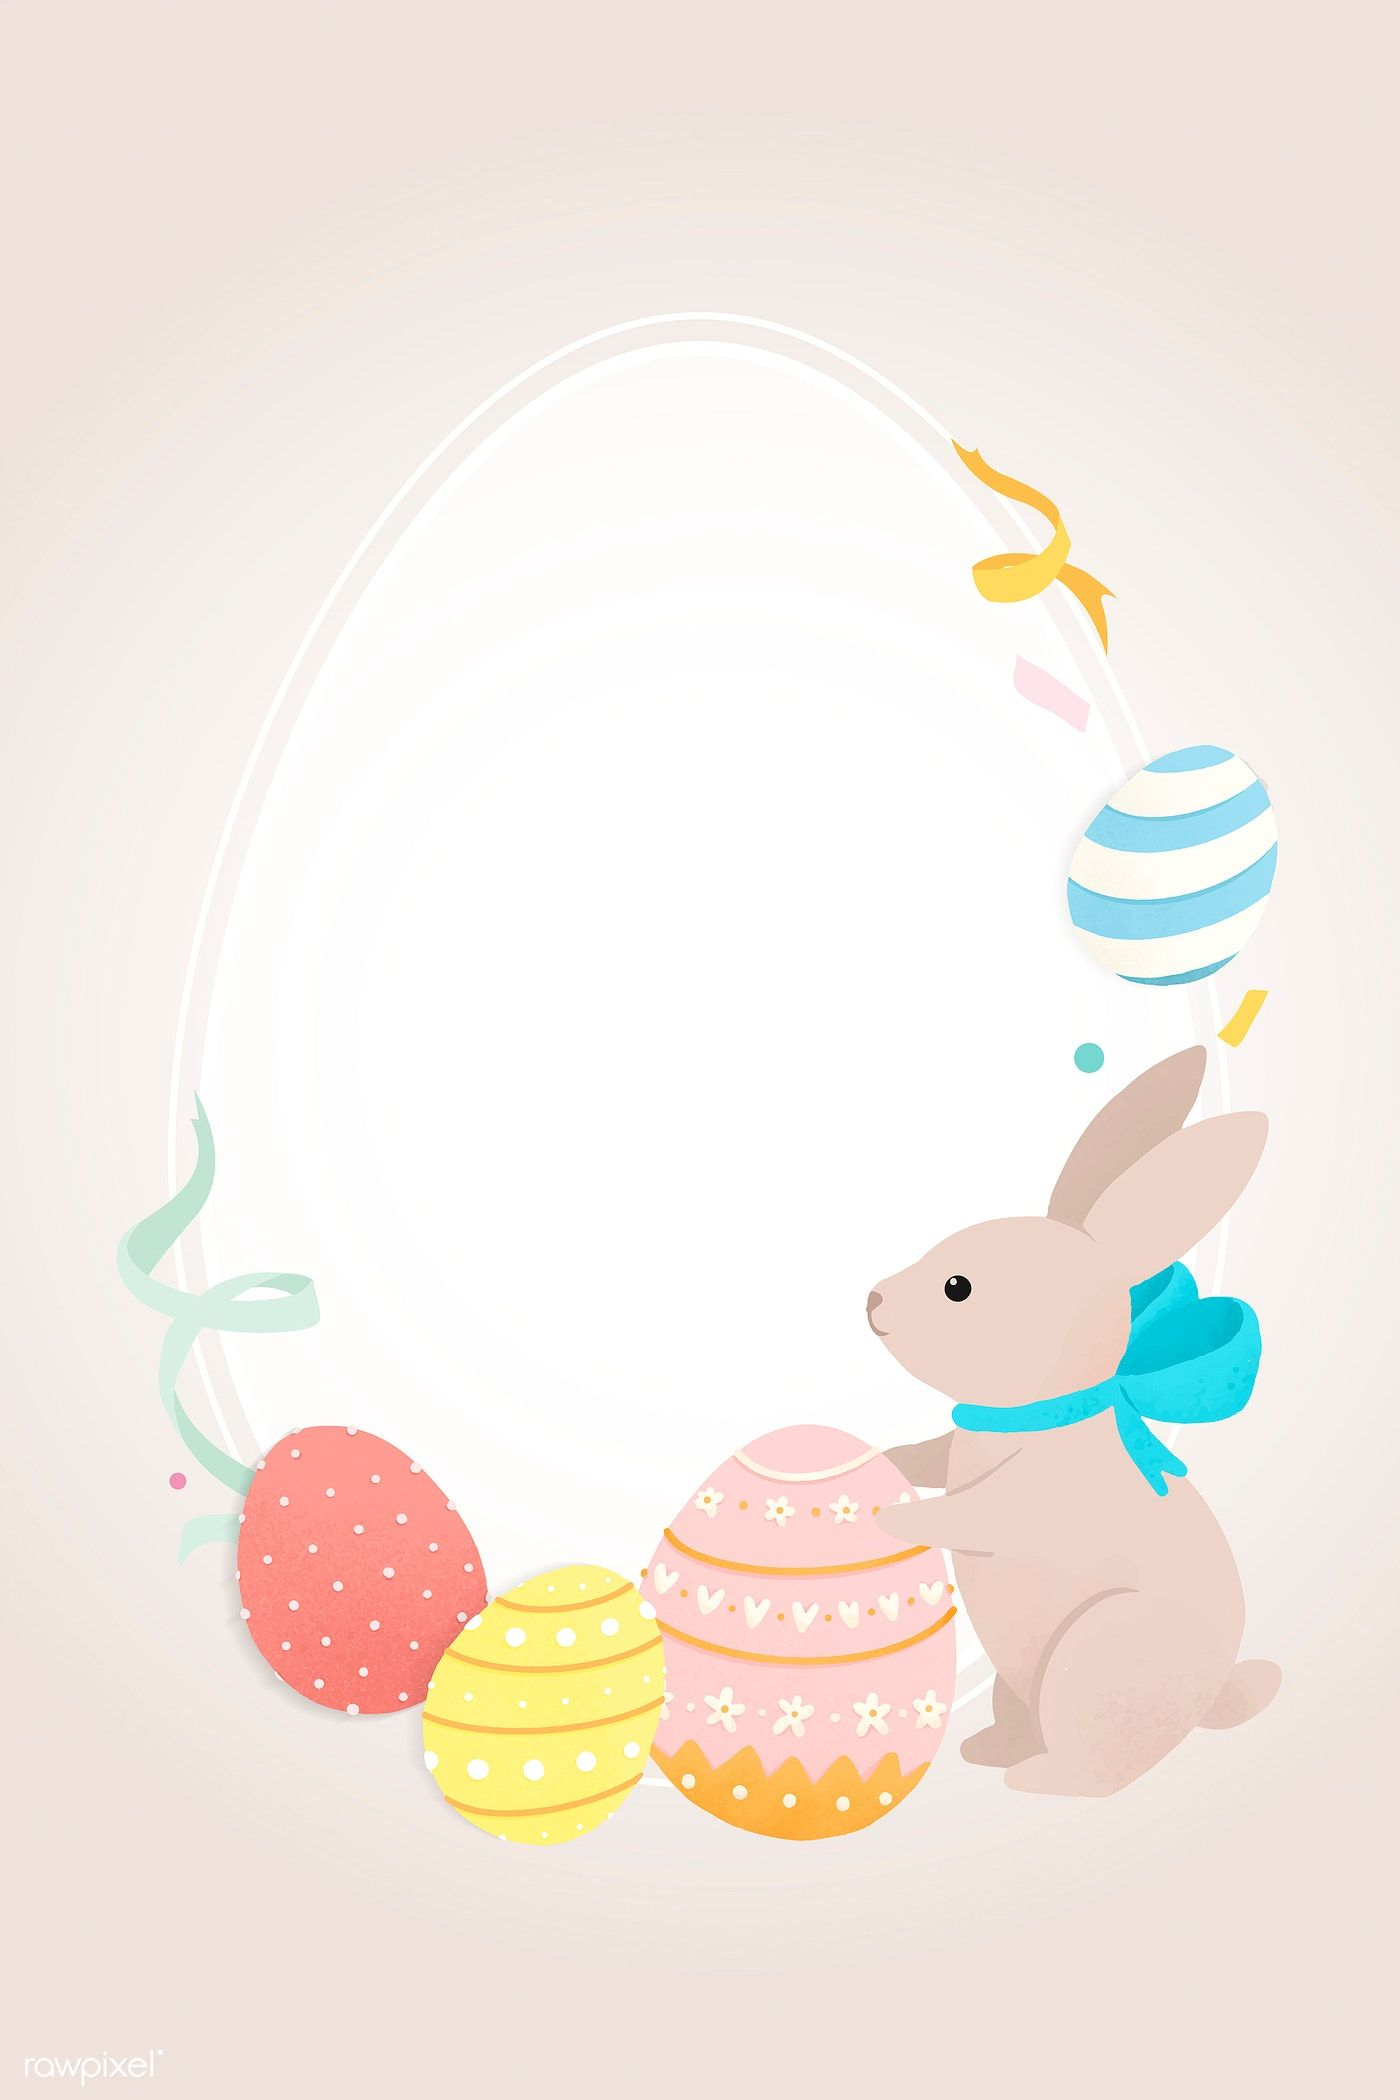 Oval Easter Frame With Bunny And Eggs Vector Free Image By Rawpixel Com Sasi Easter Frame Egg Vector Easter Bunny Template